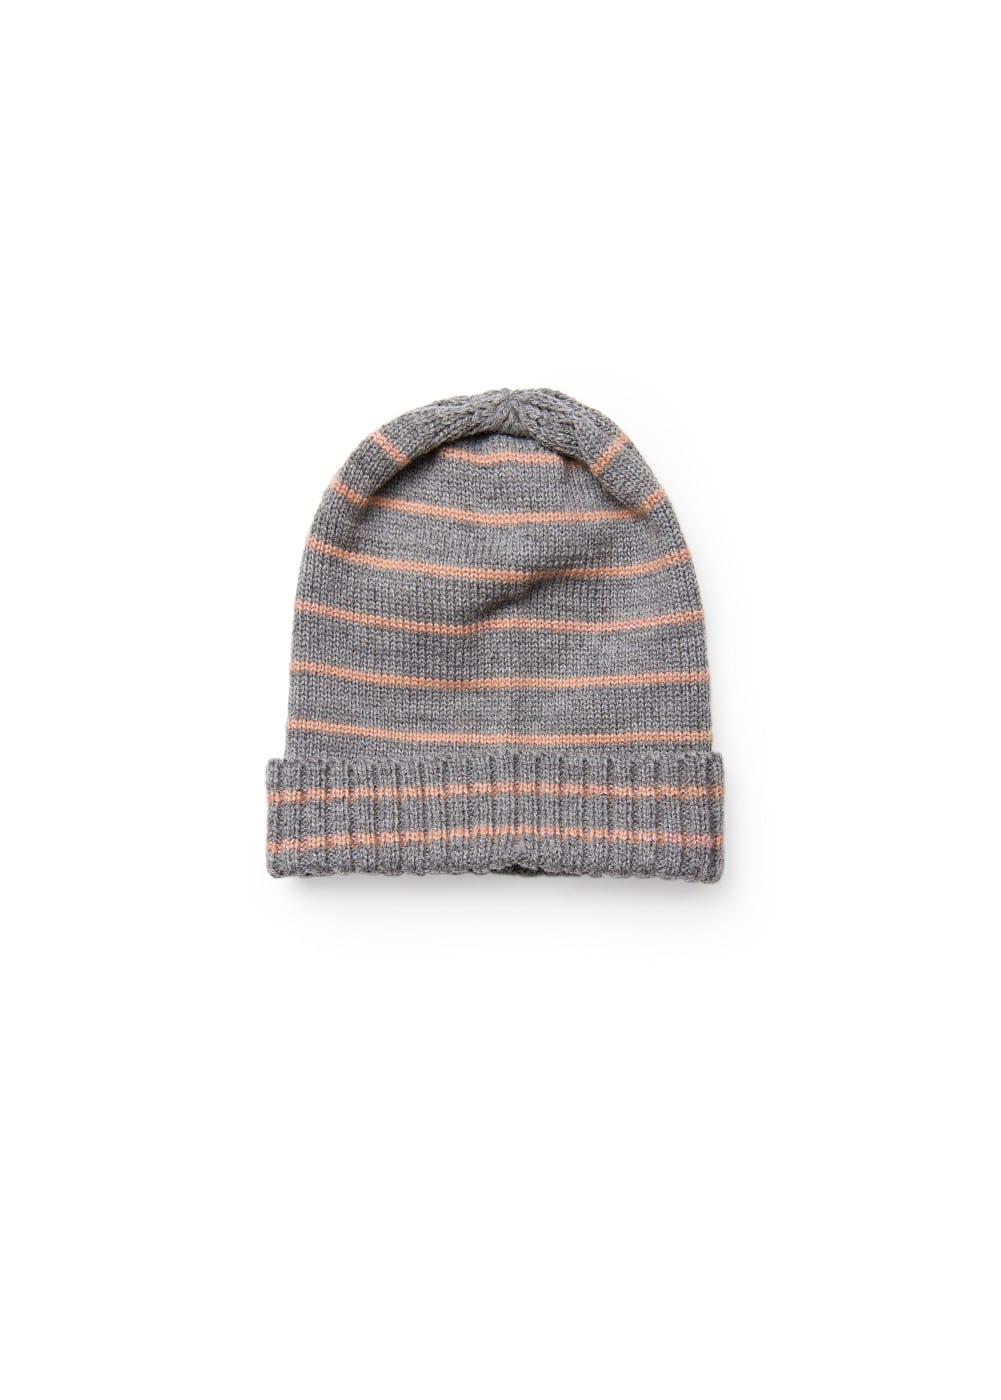 Metallic striped knit hat